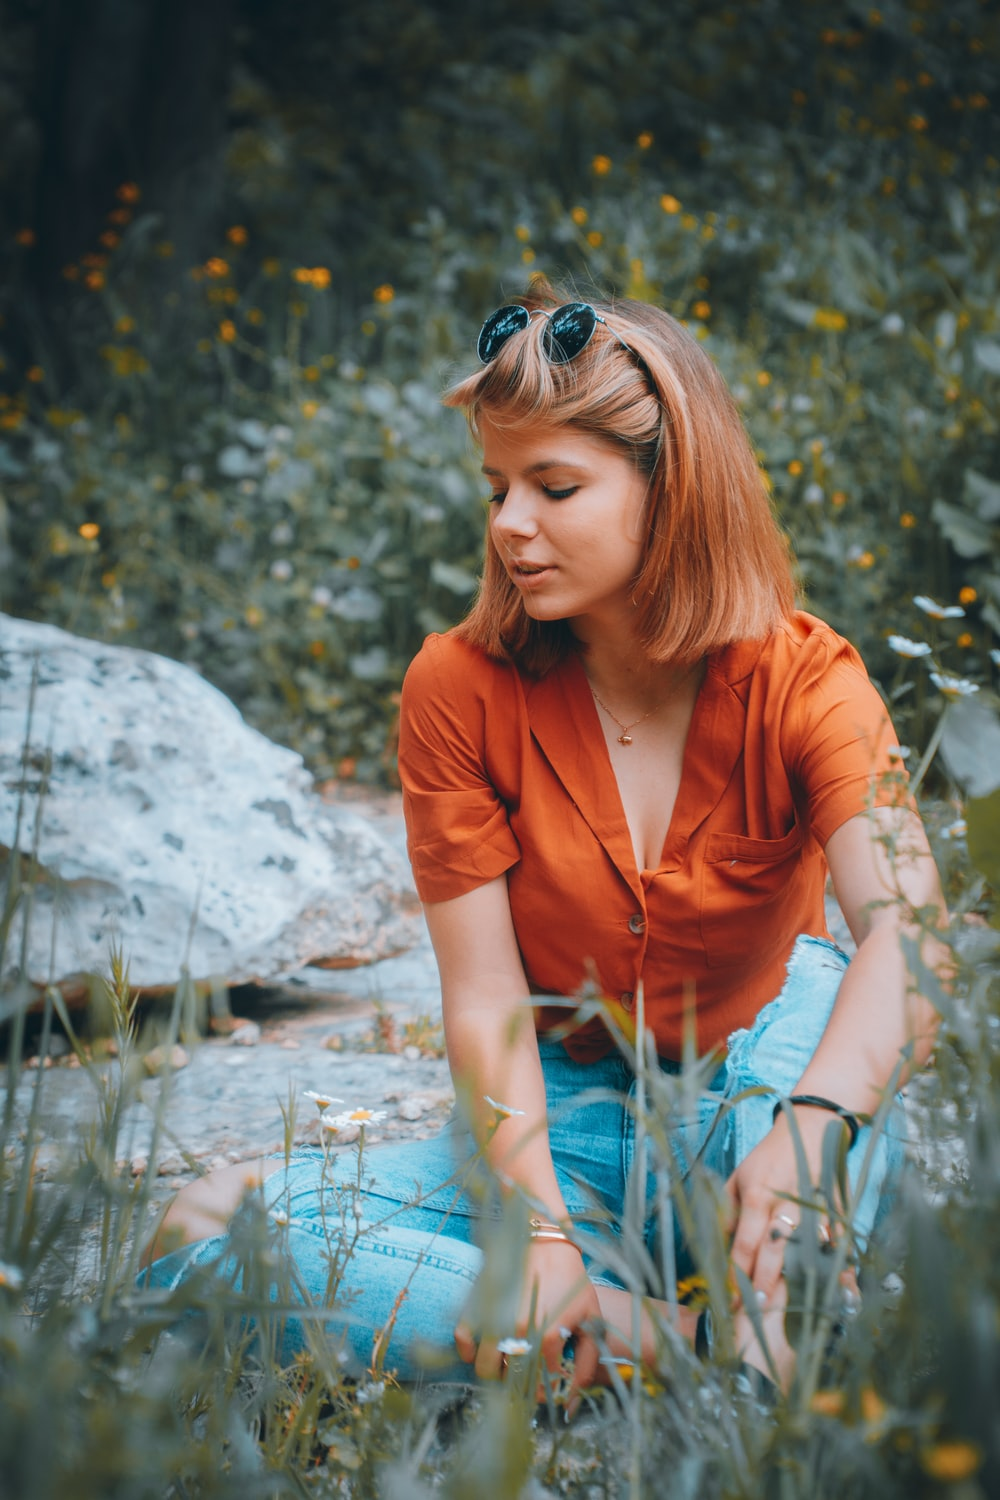 woman in orange button up shirt wearing blue sunglasses sitting on rock in river during daytime